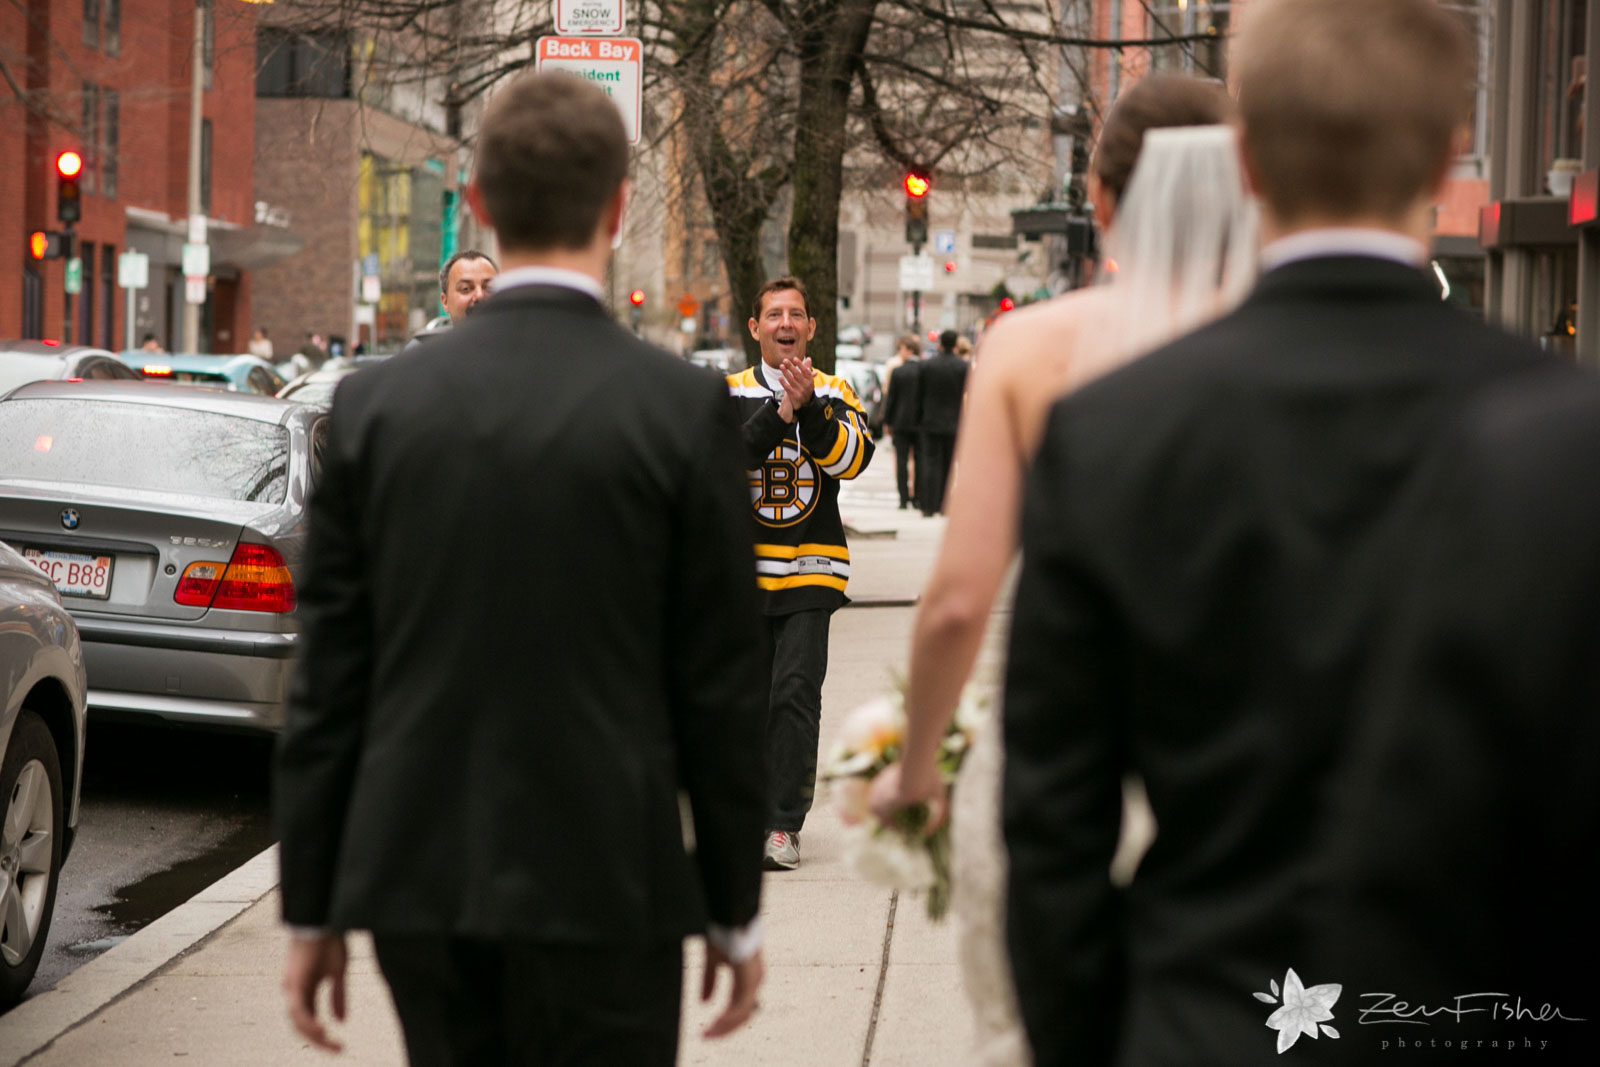 Passersby on the sidewalk smiling and clapping at the newly married couple.